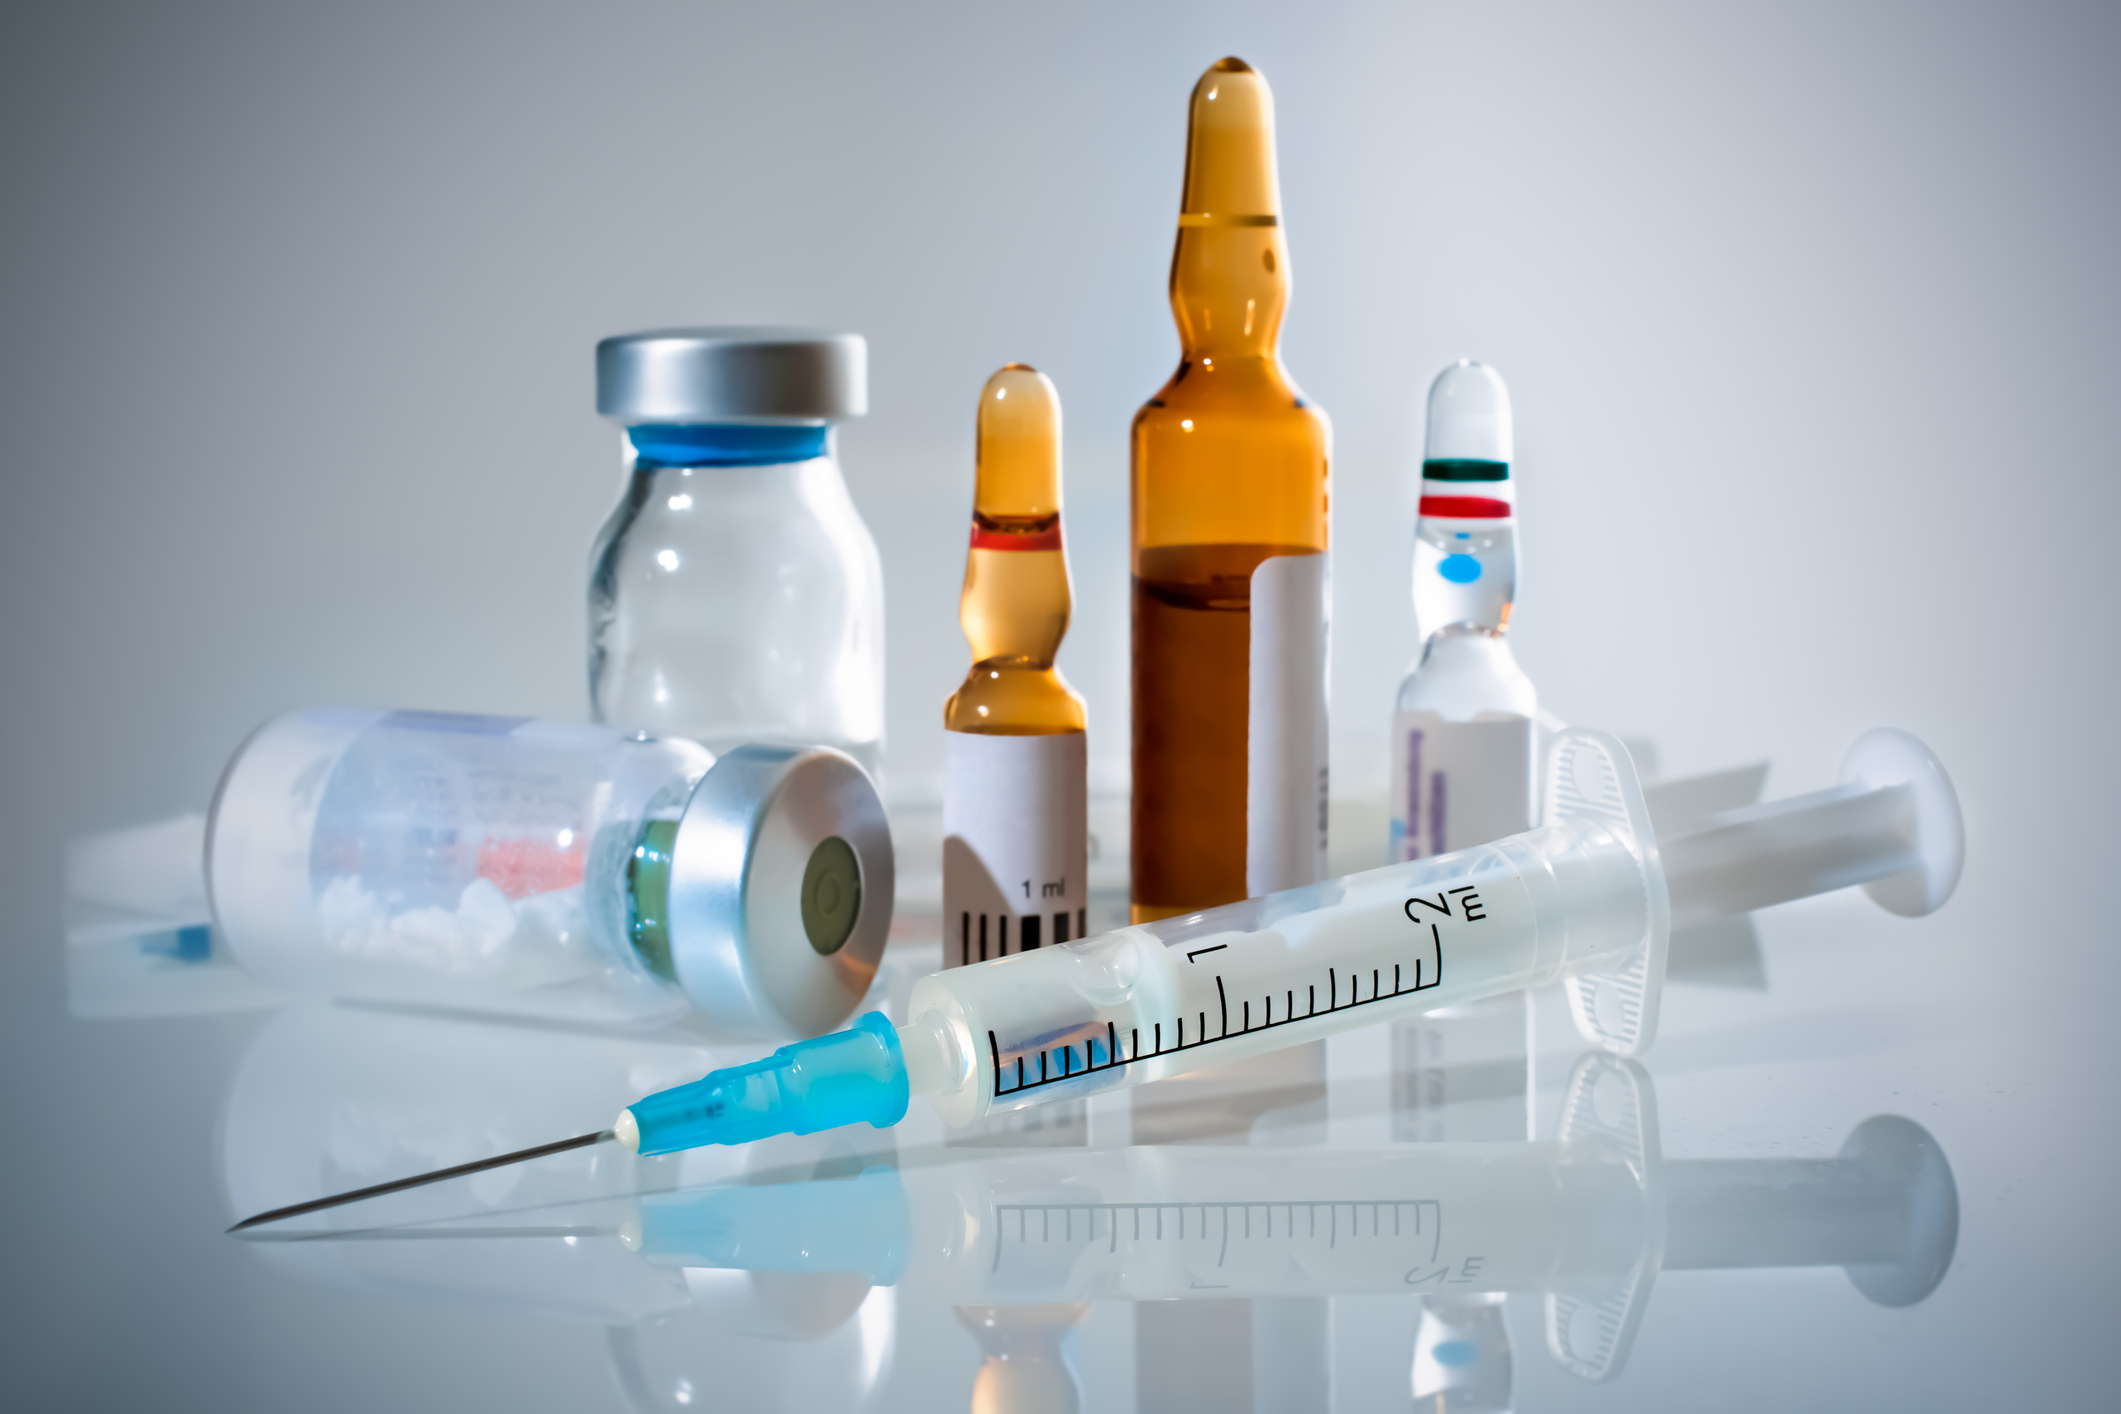 drug and vaccine vials